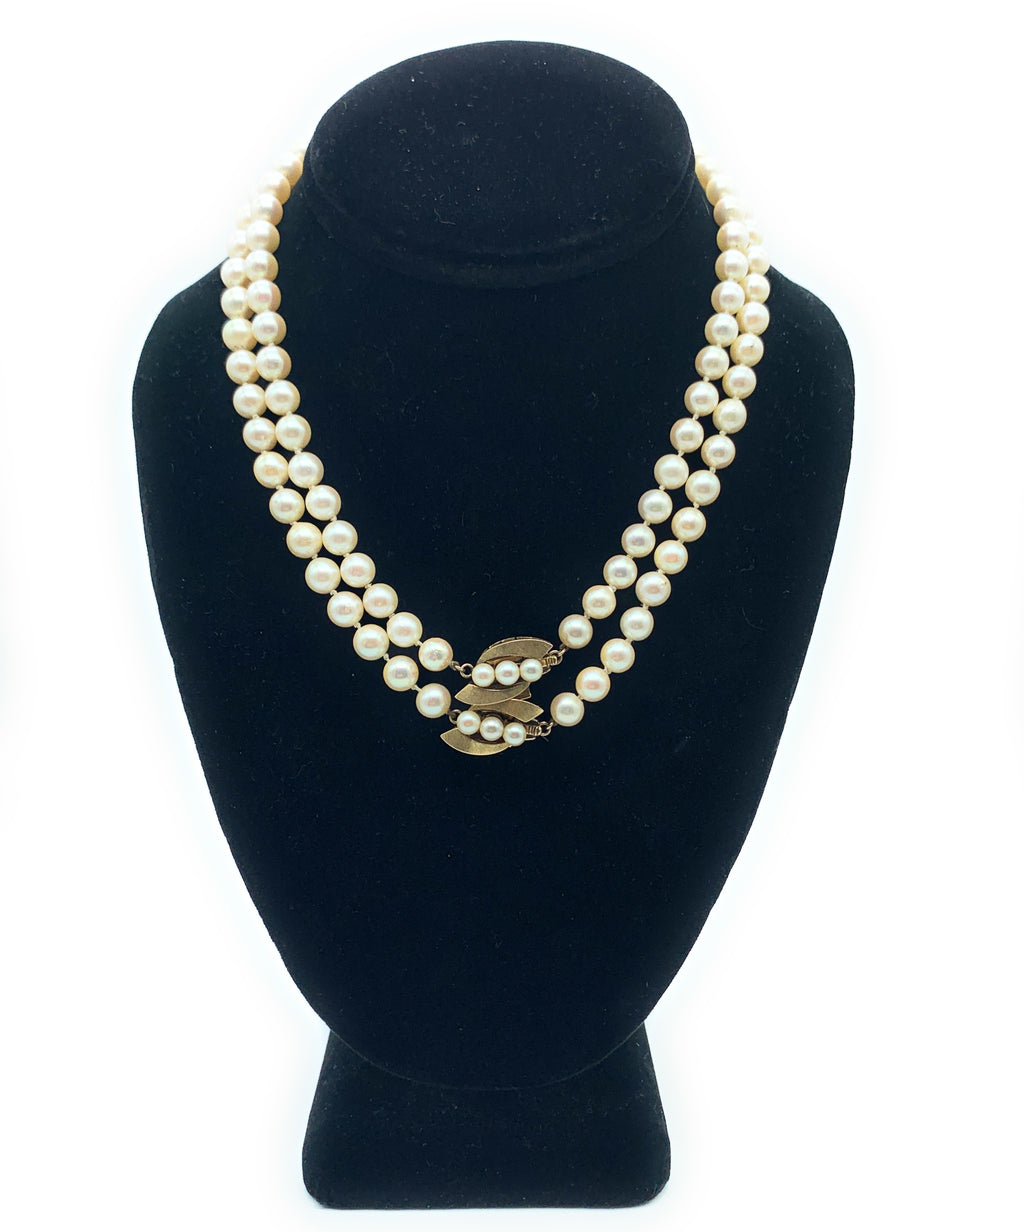 Vintage 14K Yellow Gold & Cultured Pearl Dual Strand Choker Necklace